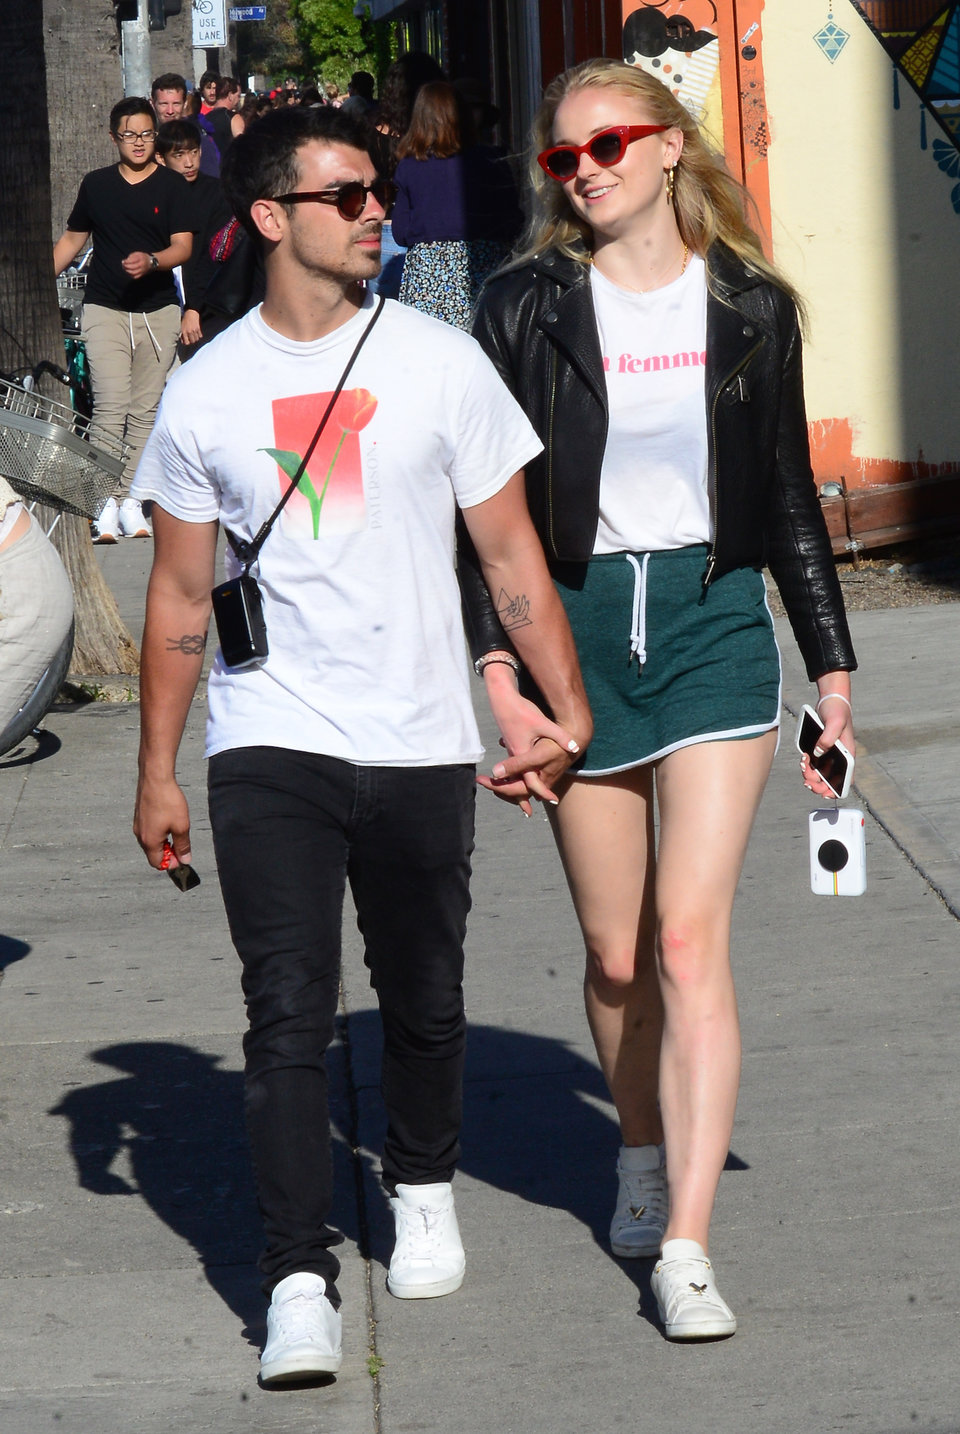 Photo of Joe and Sophie in Venice